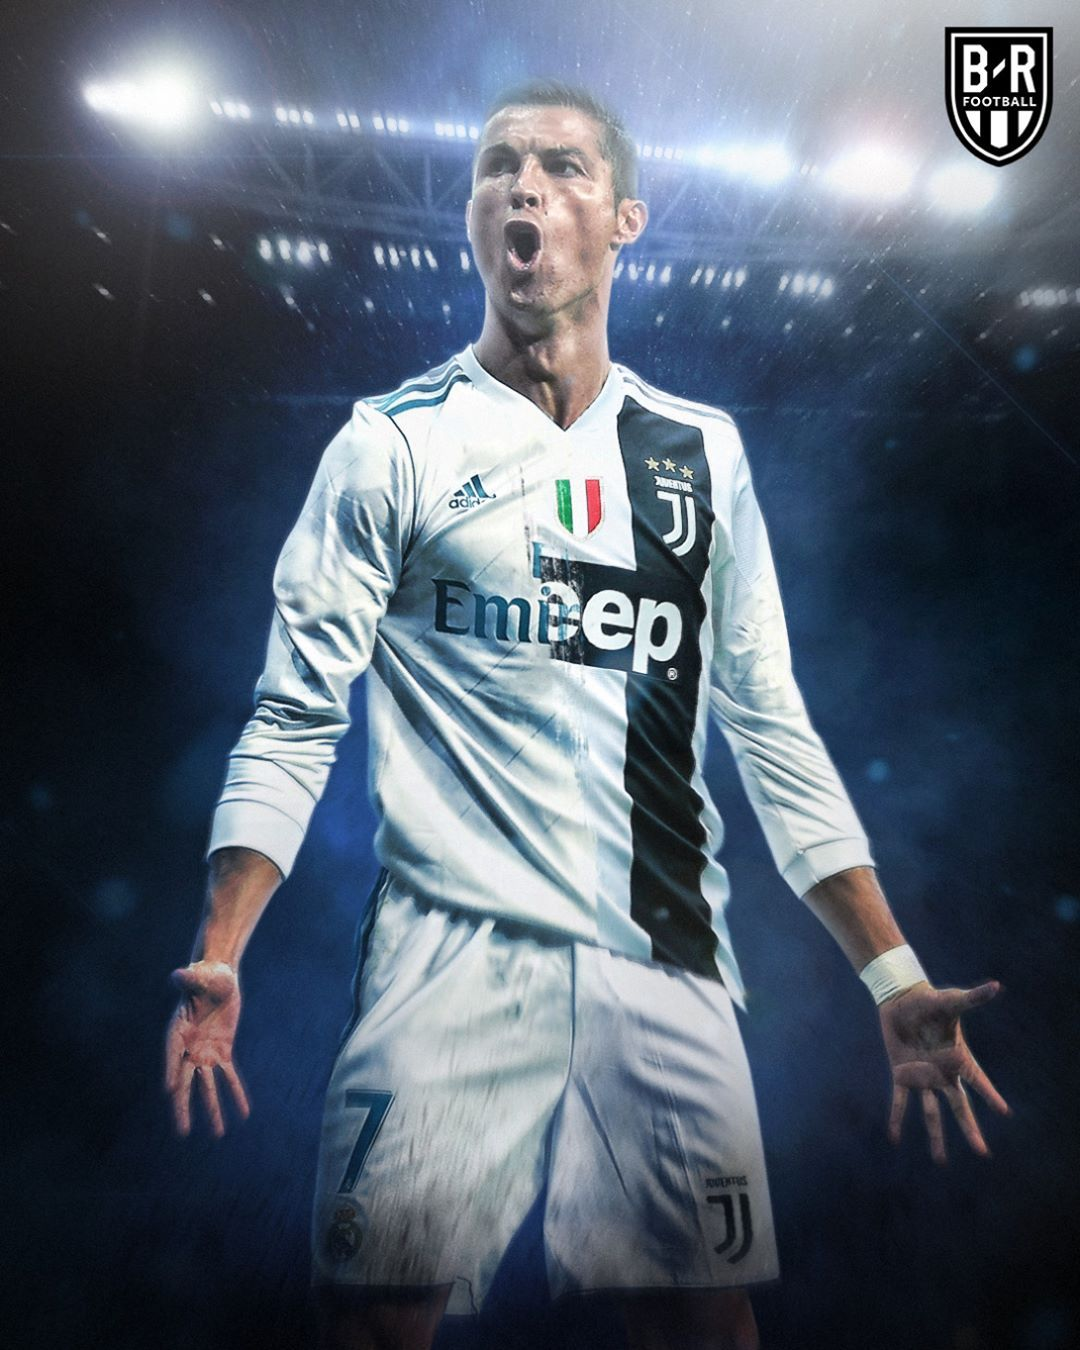 Cristiano Ronaldo to Juventus is DONE, reports Italian